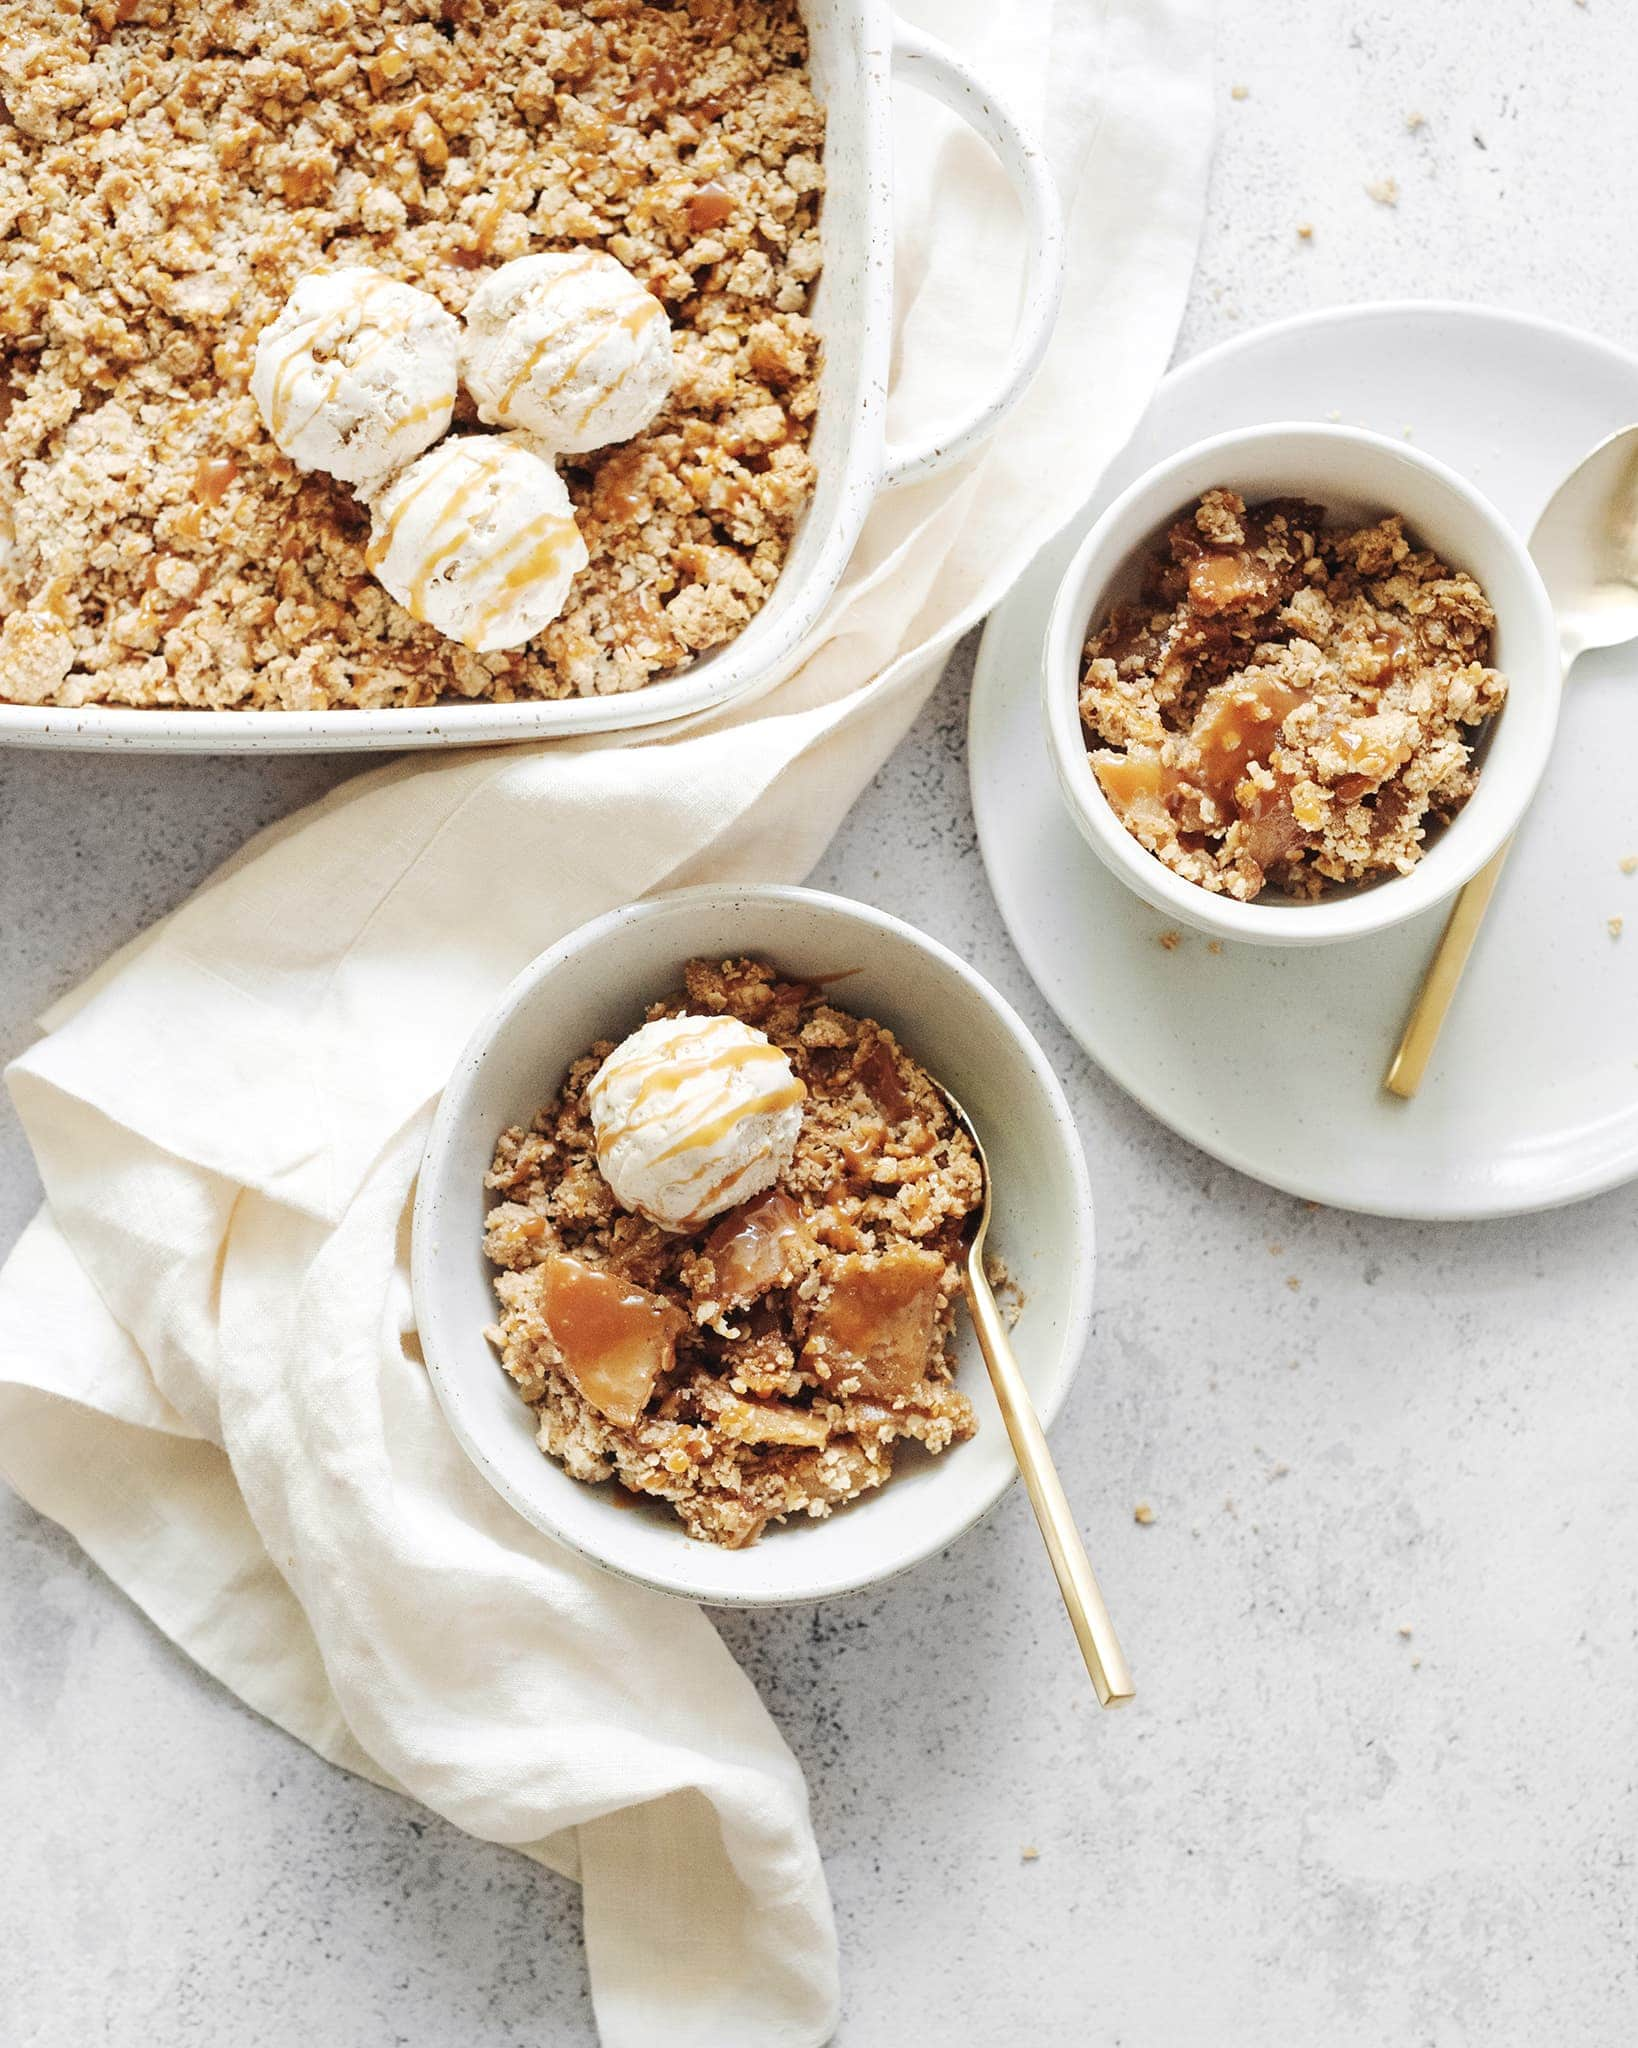 A baking dish and bowls of caramel apple crisp topped with ice cream